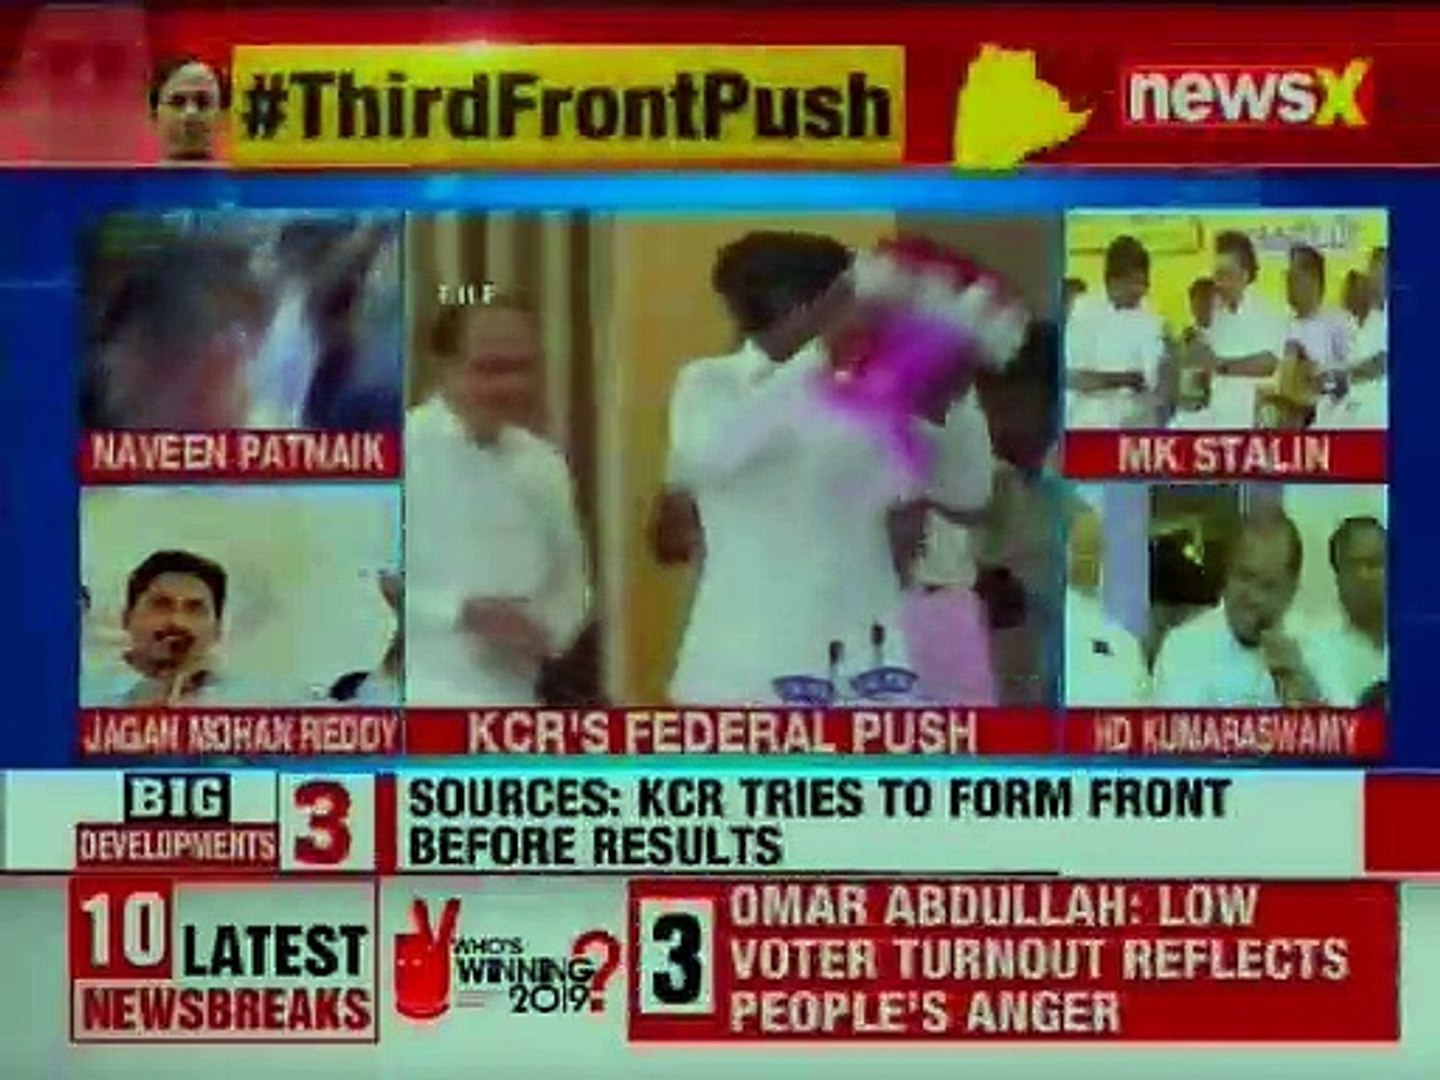 KCR to Set out to Form Third Front; to meet Opposition Leaders, Sources